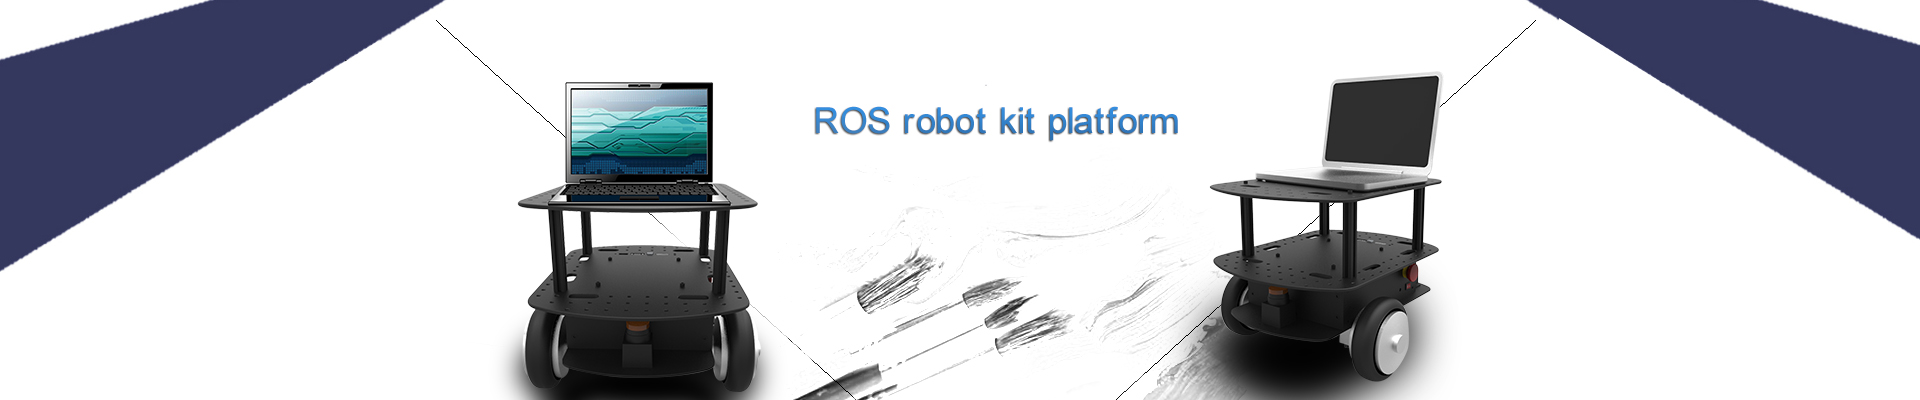 ROS open source robot kit